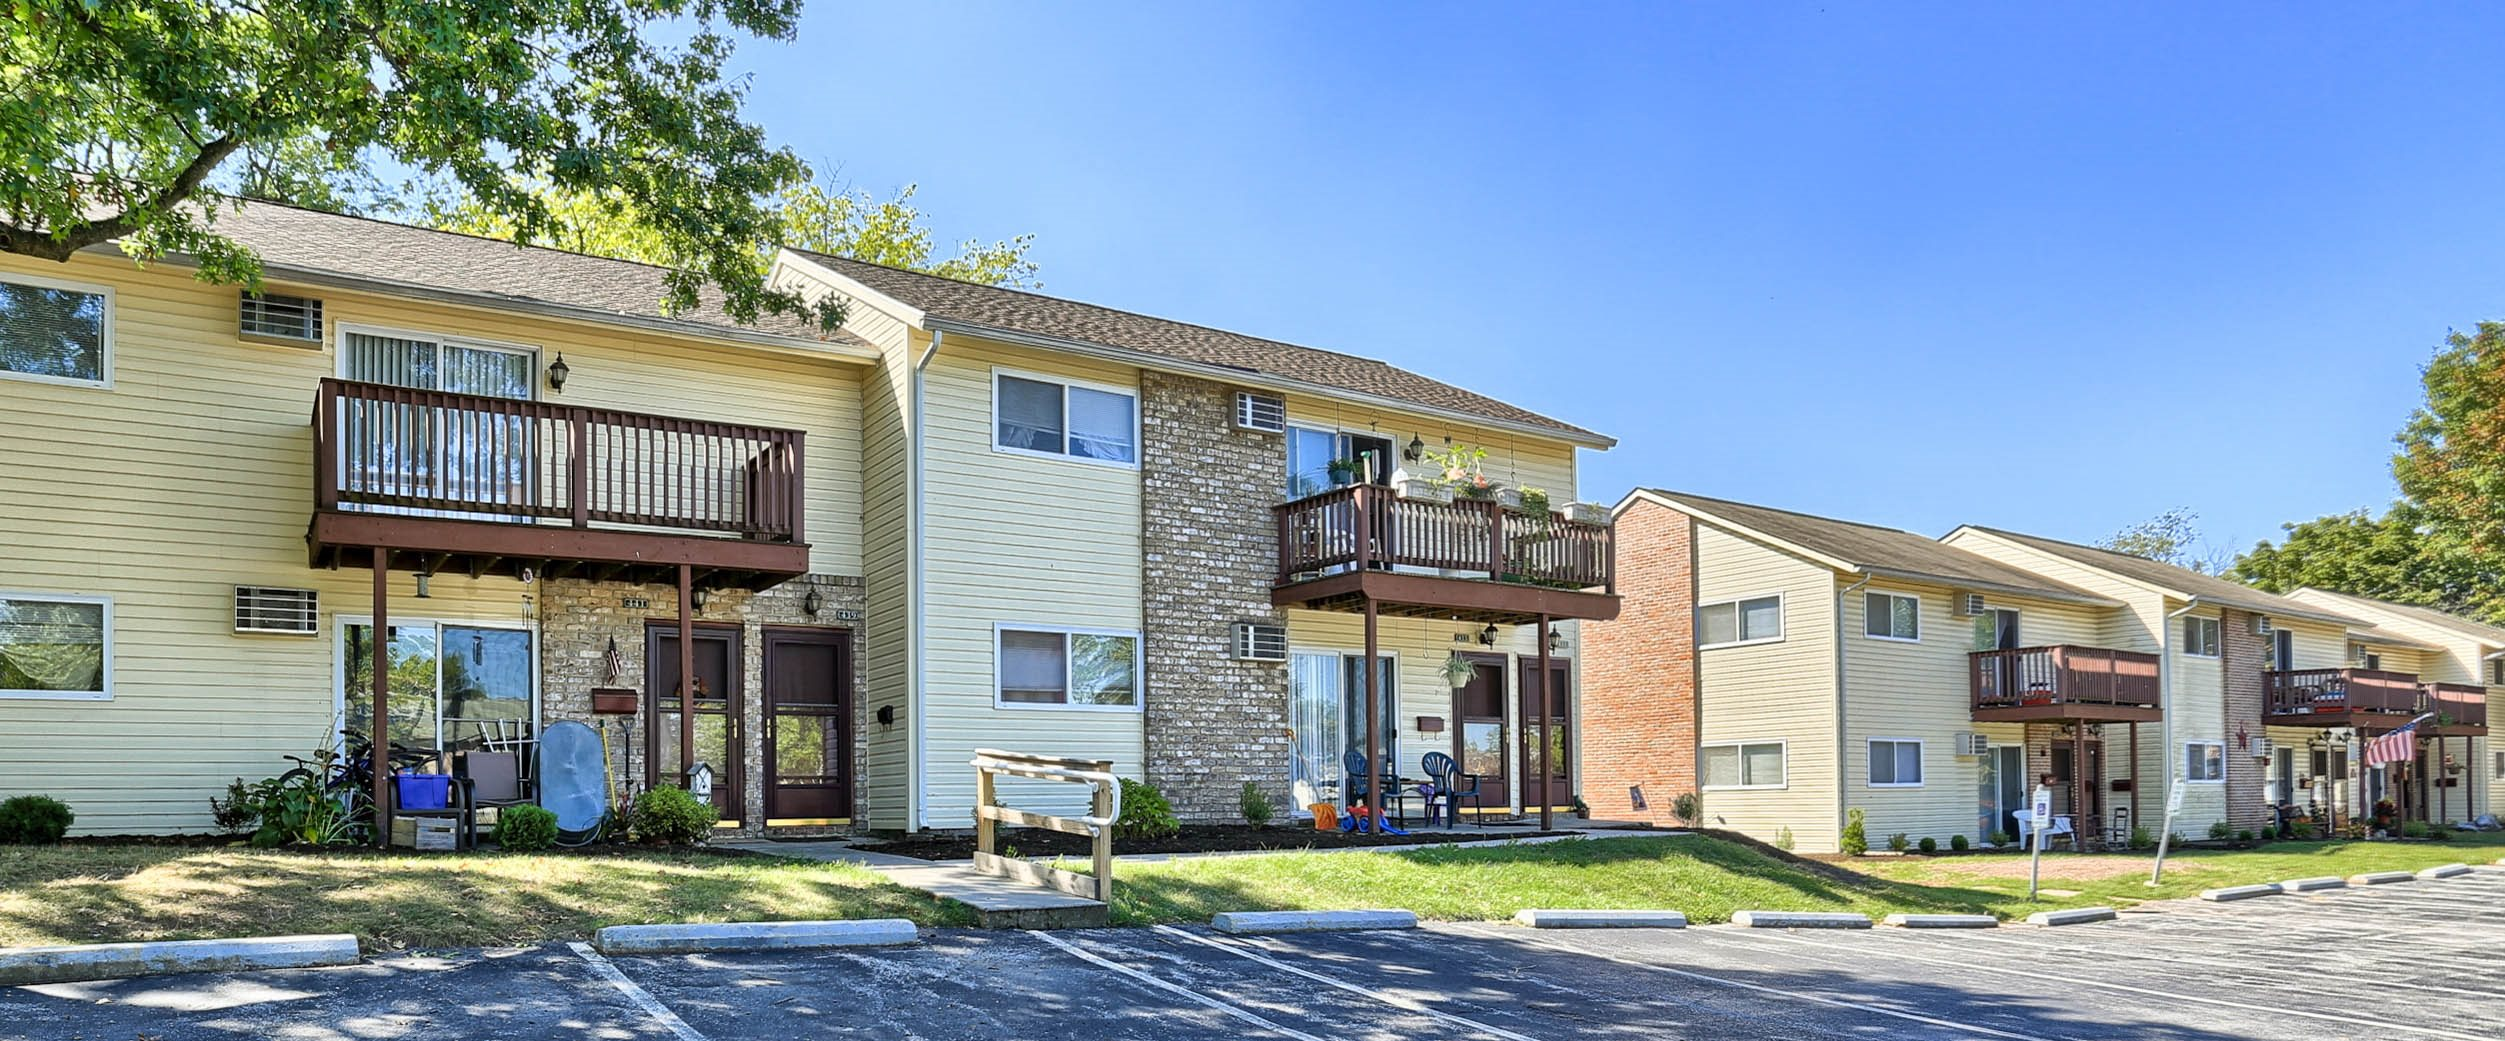 Affordable Apartments in Gettysburg, PA | Breckenridge Village Apartments | Property Management, Inc.